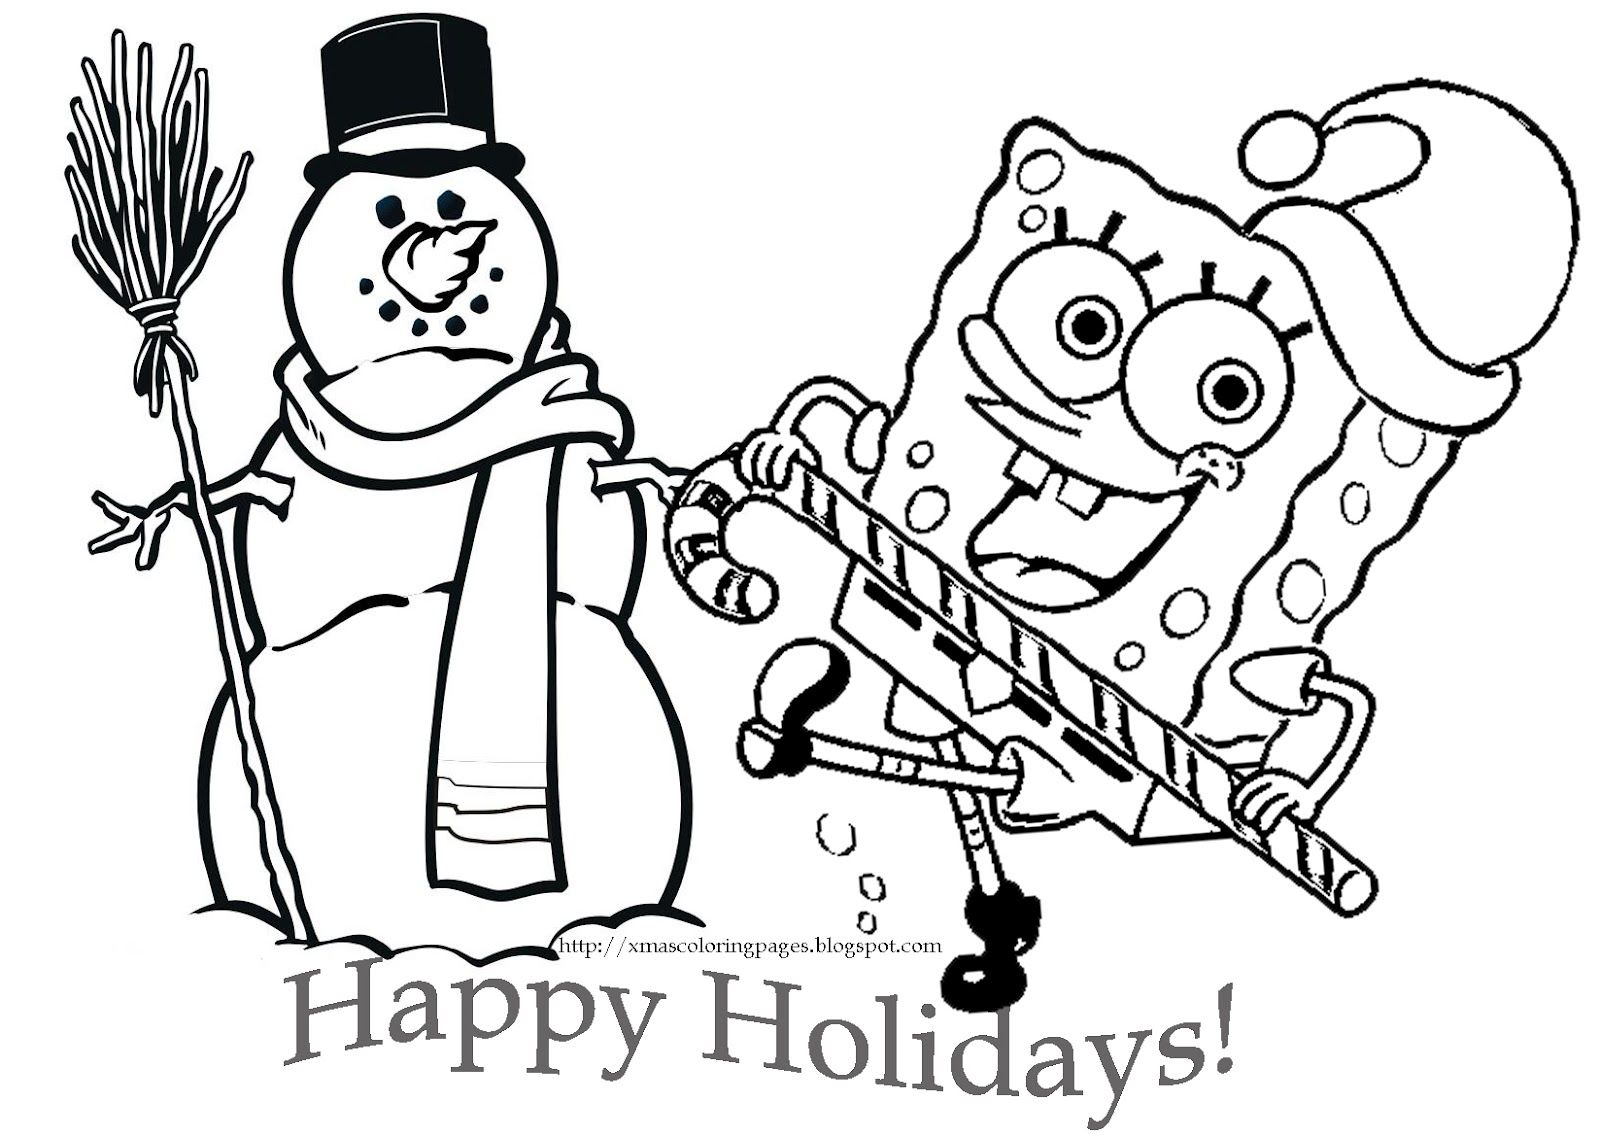 Coloring sheet for christmas - Spongebob Coloring Book Spongebob Squarepants Christmas Coloring Page That Shows Spongebob